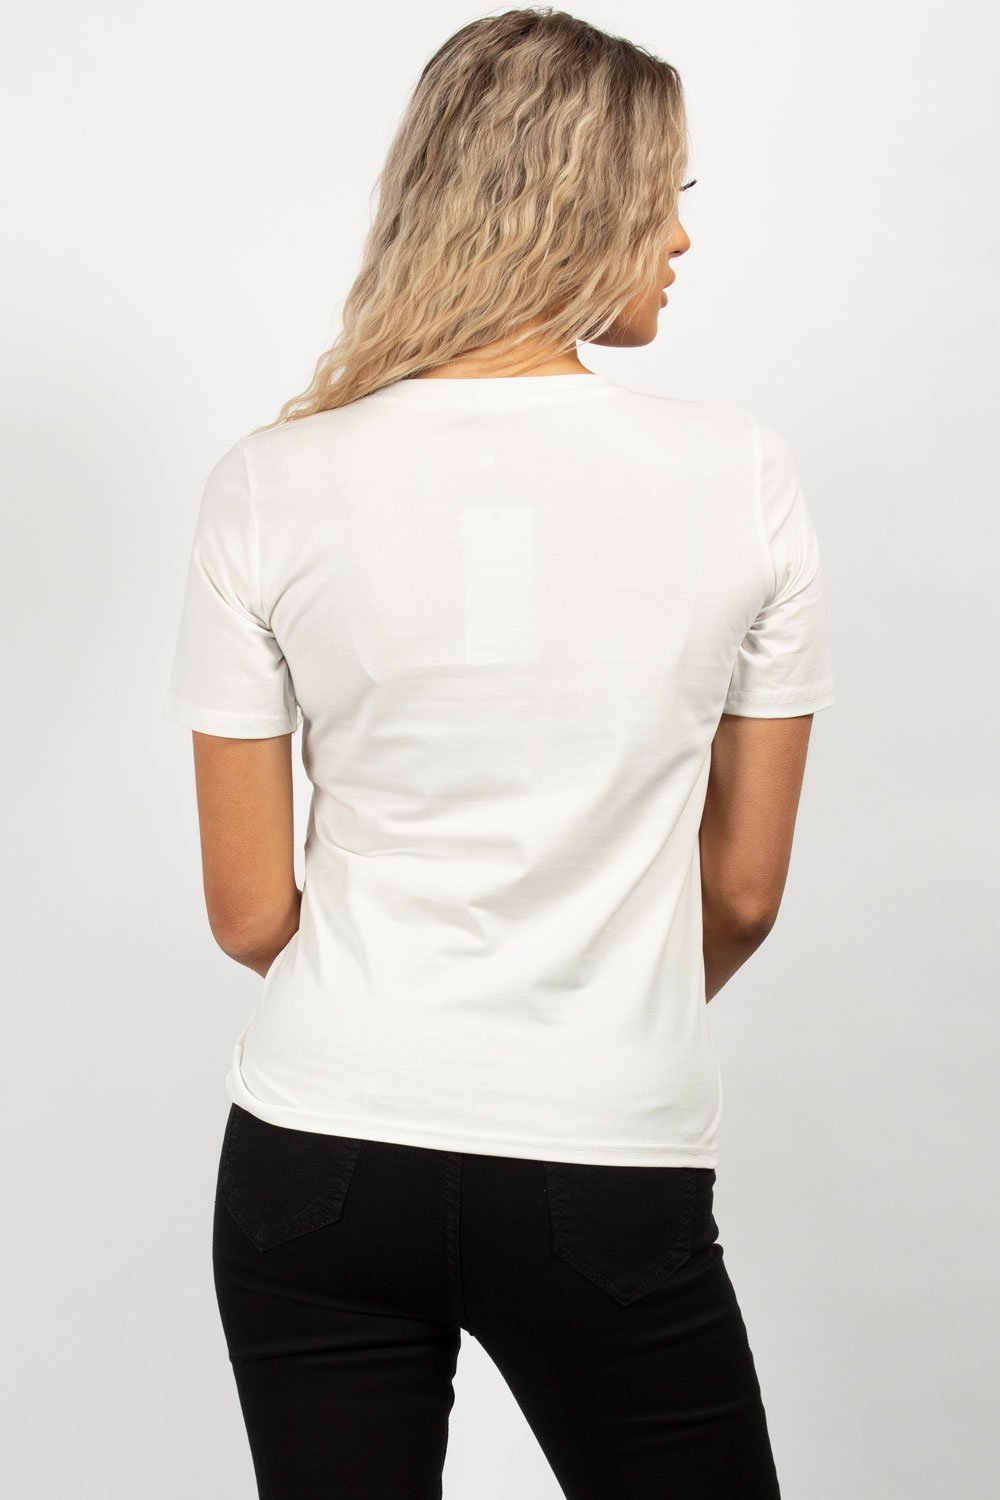 womens white top uk